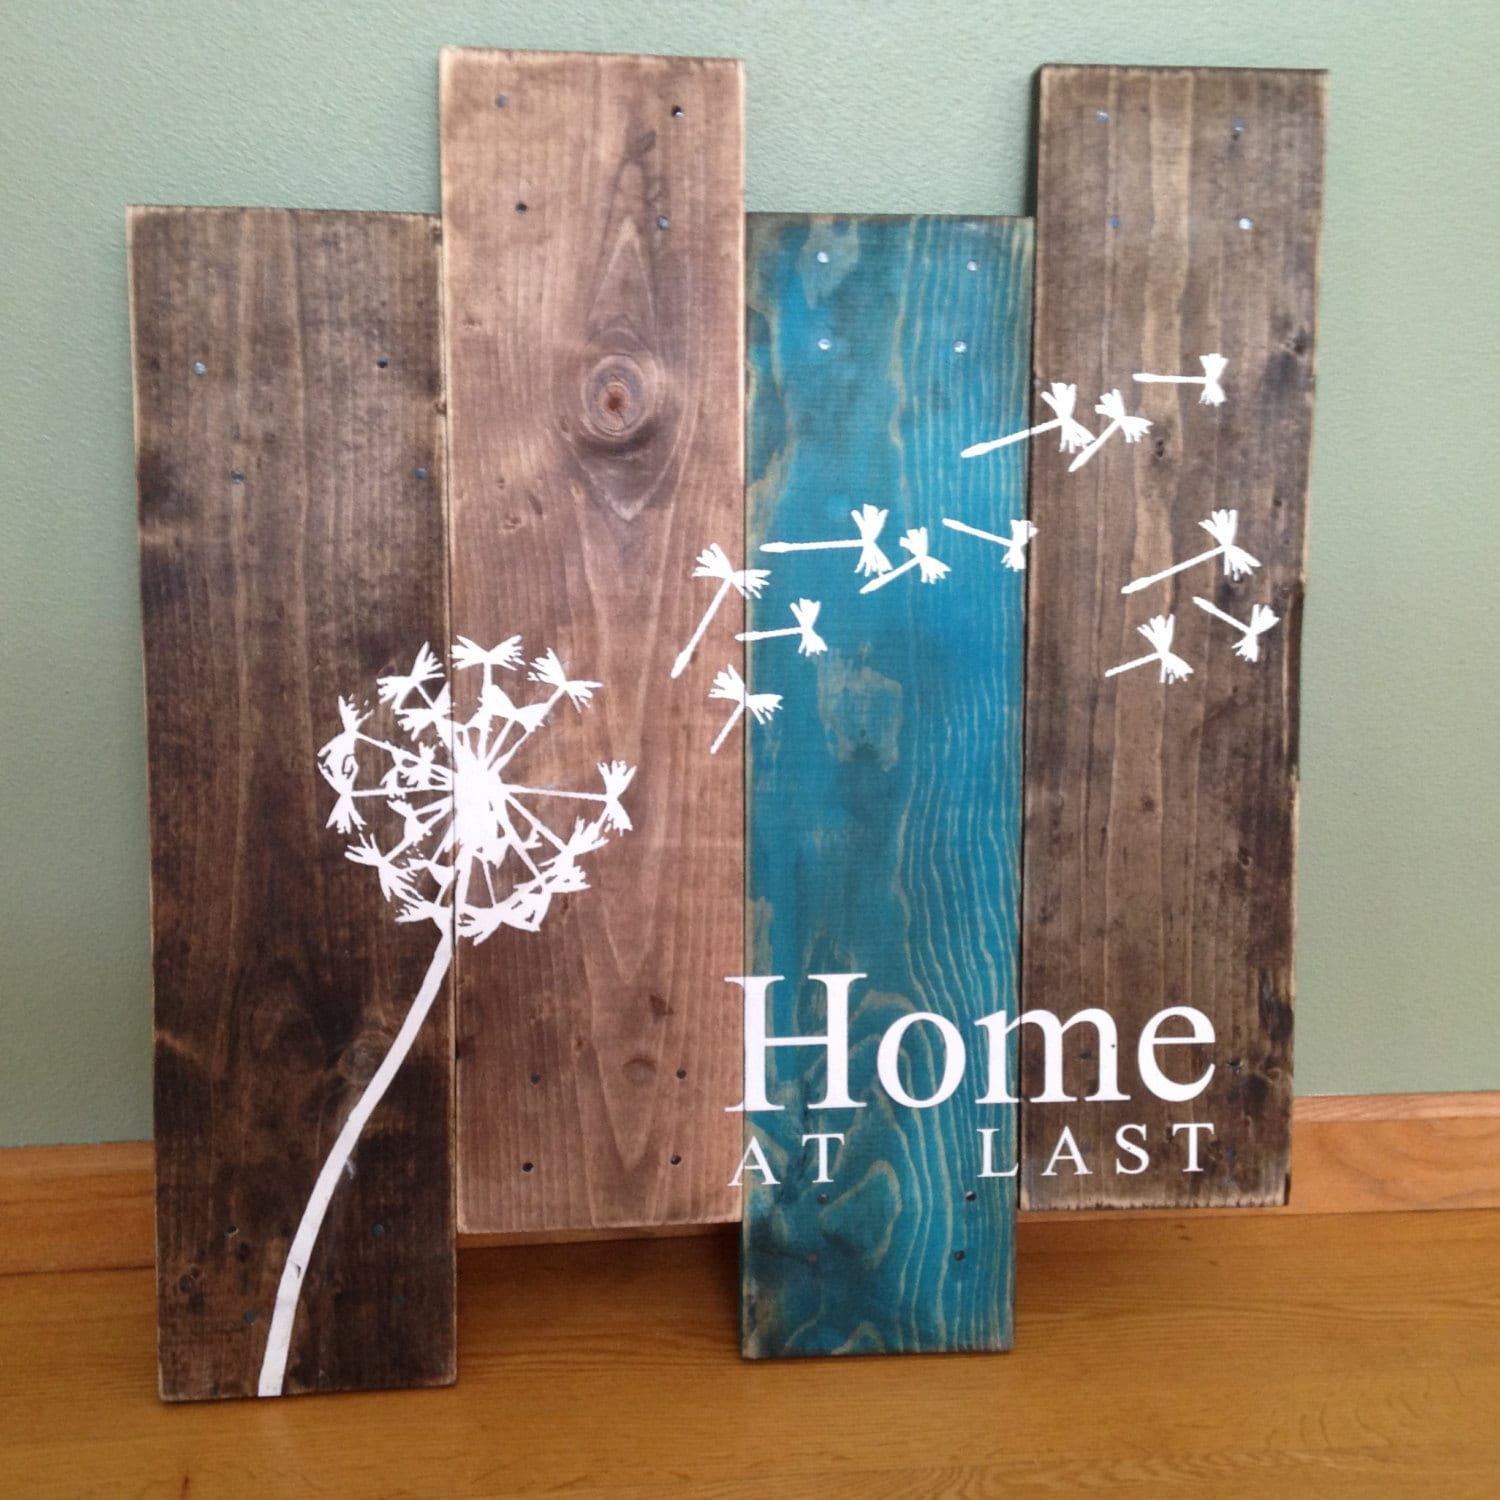 Wall Art And Decor Dandelion Wall Hanginghome At Last Rustic Wall Decorteal